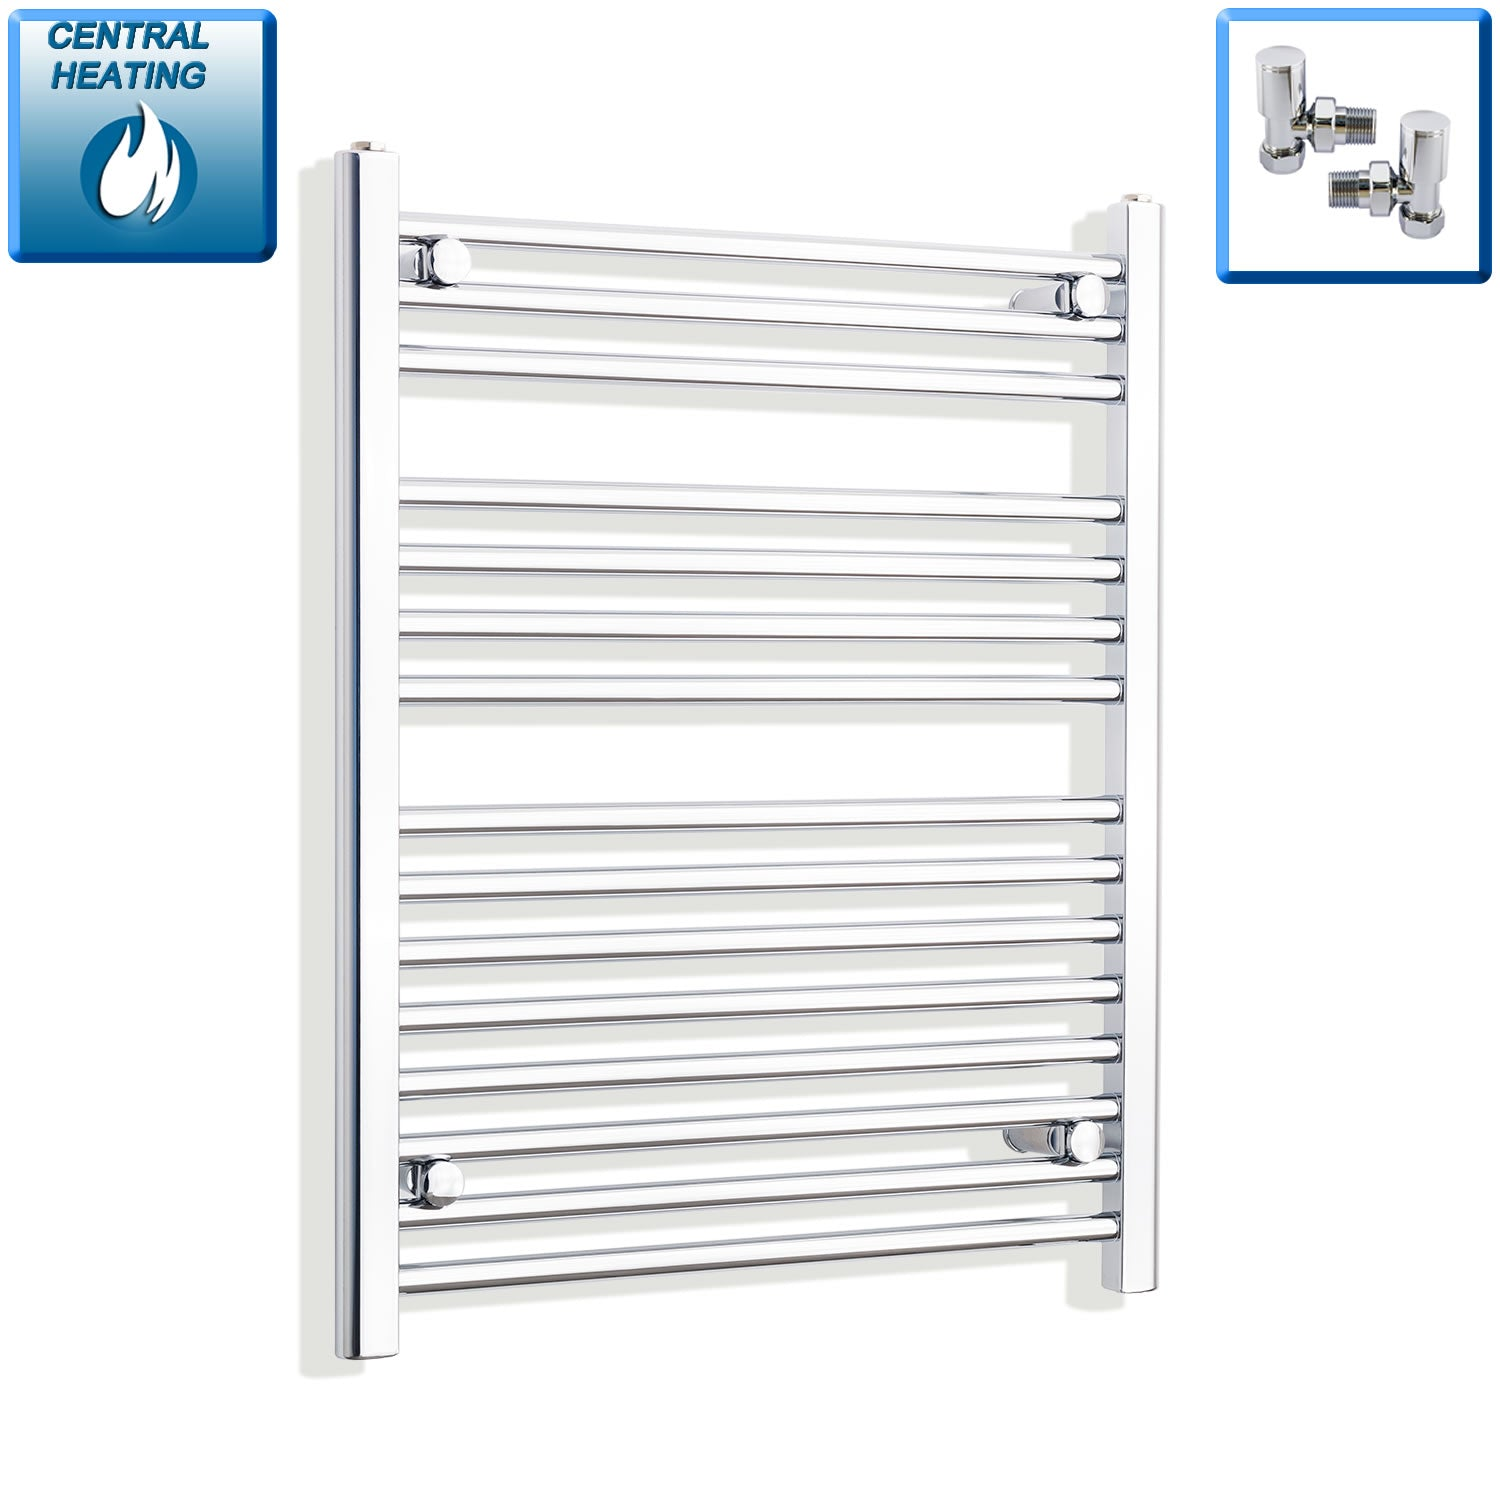 700mm Wide 800mm High Flat Chrome Heated Towel Rail Radiator HTR,With Angled Valve